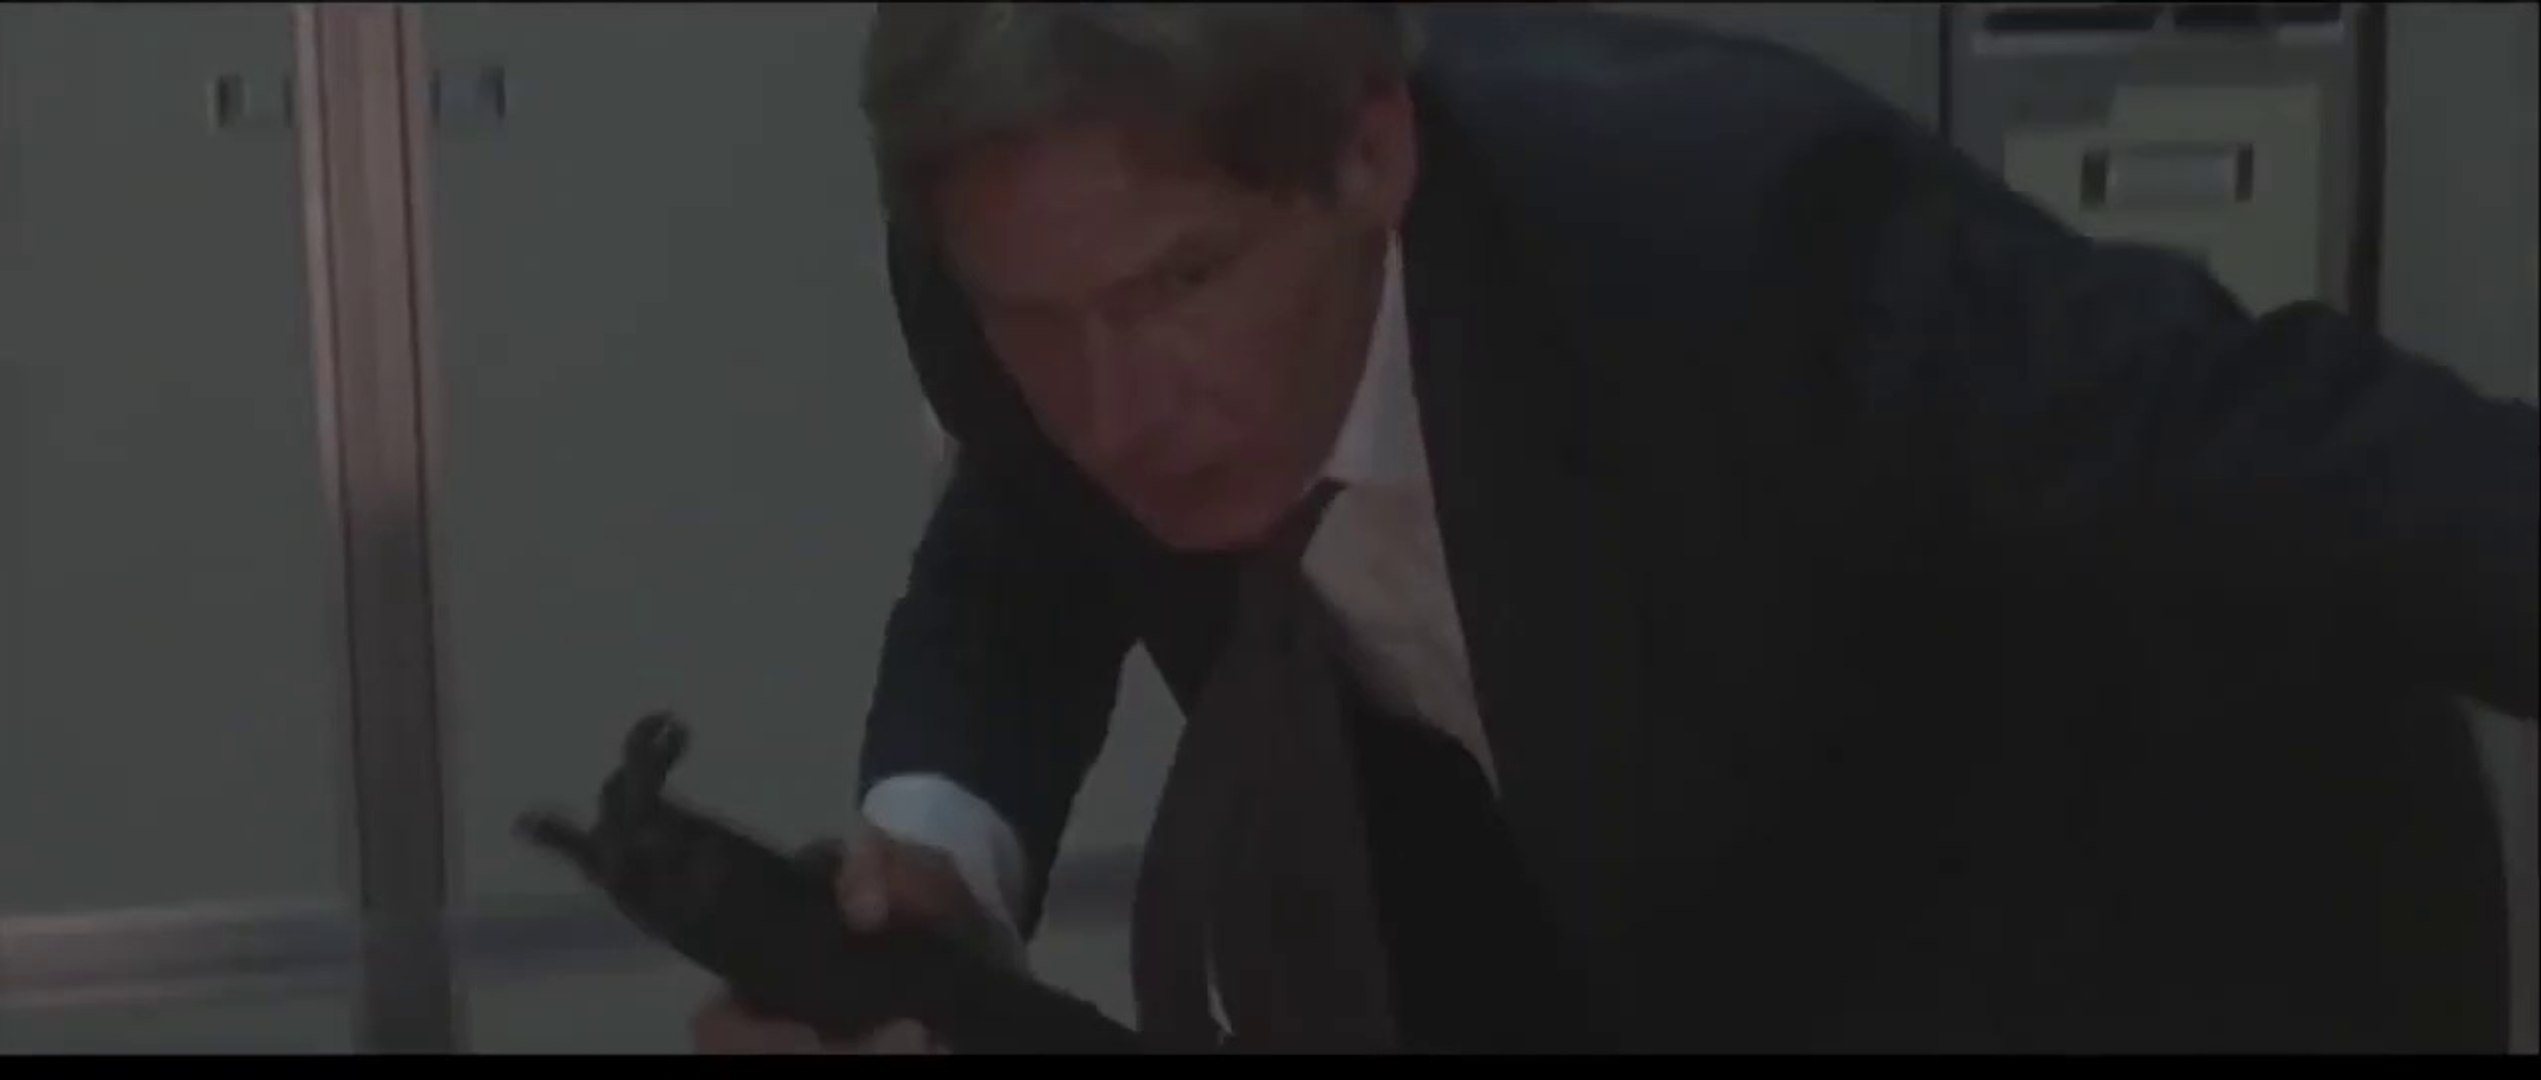 Air Force One (1997) ~ Part 1/3 Harrison Ford, Glenn Close - video ...